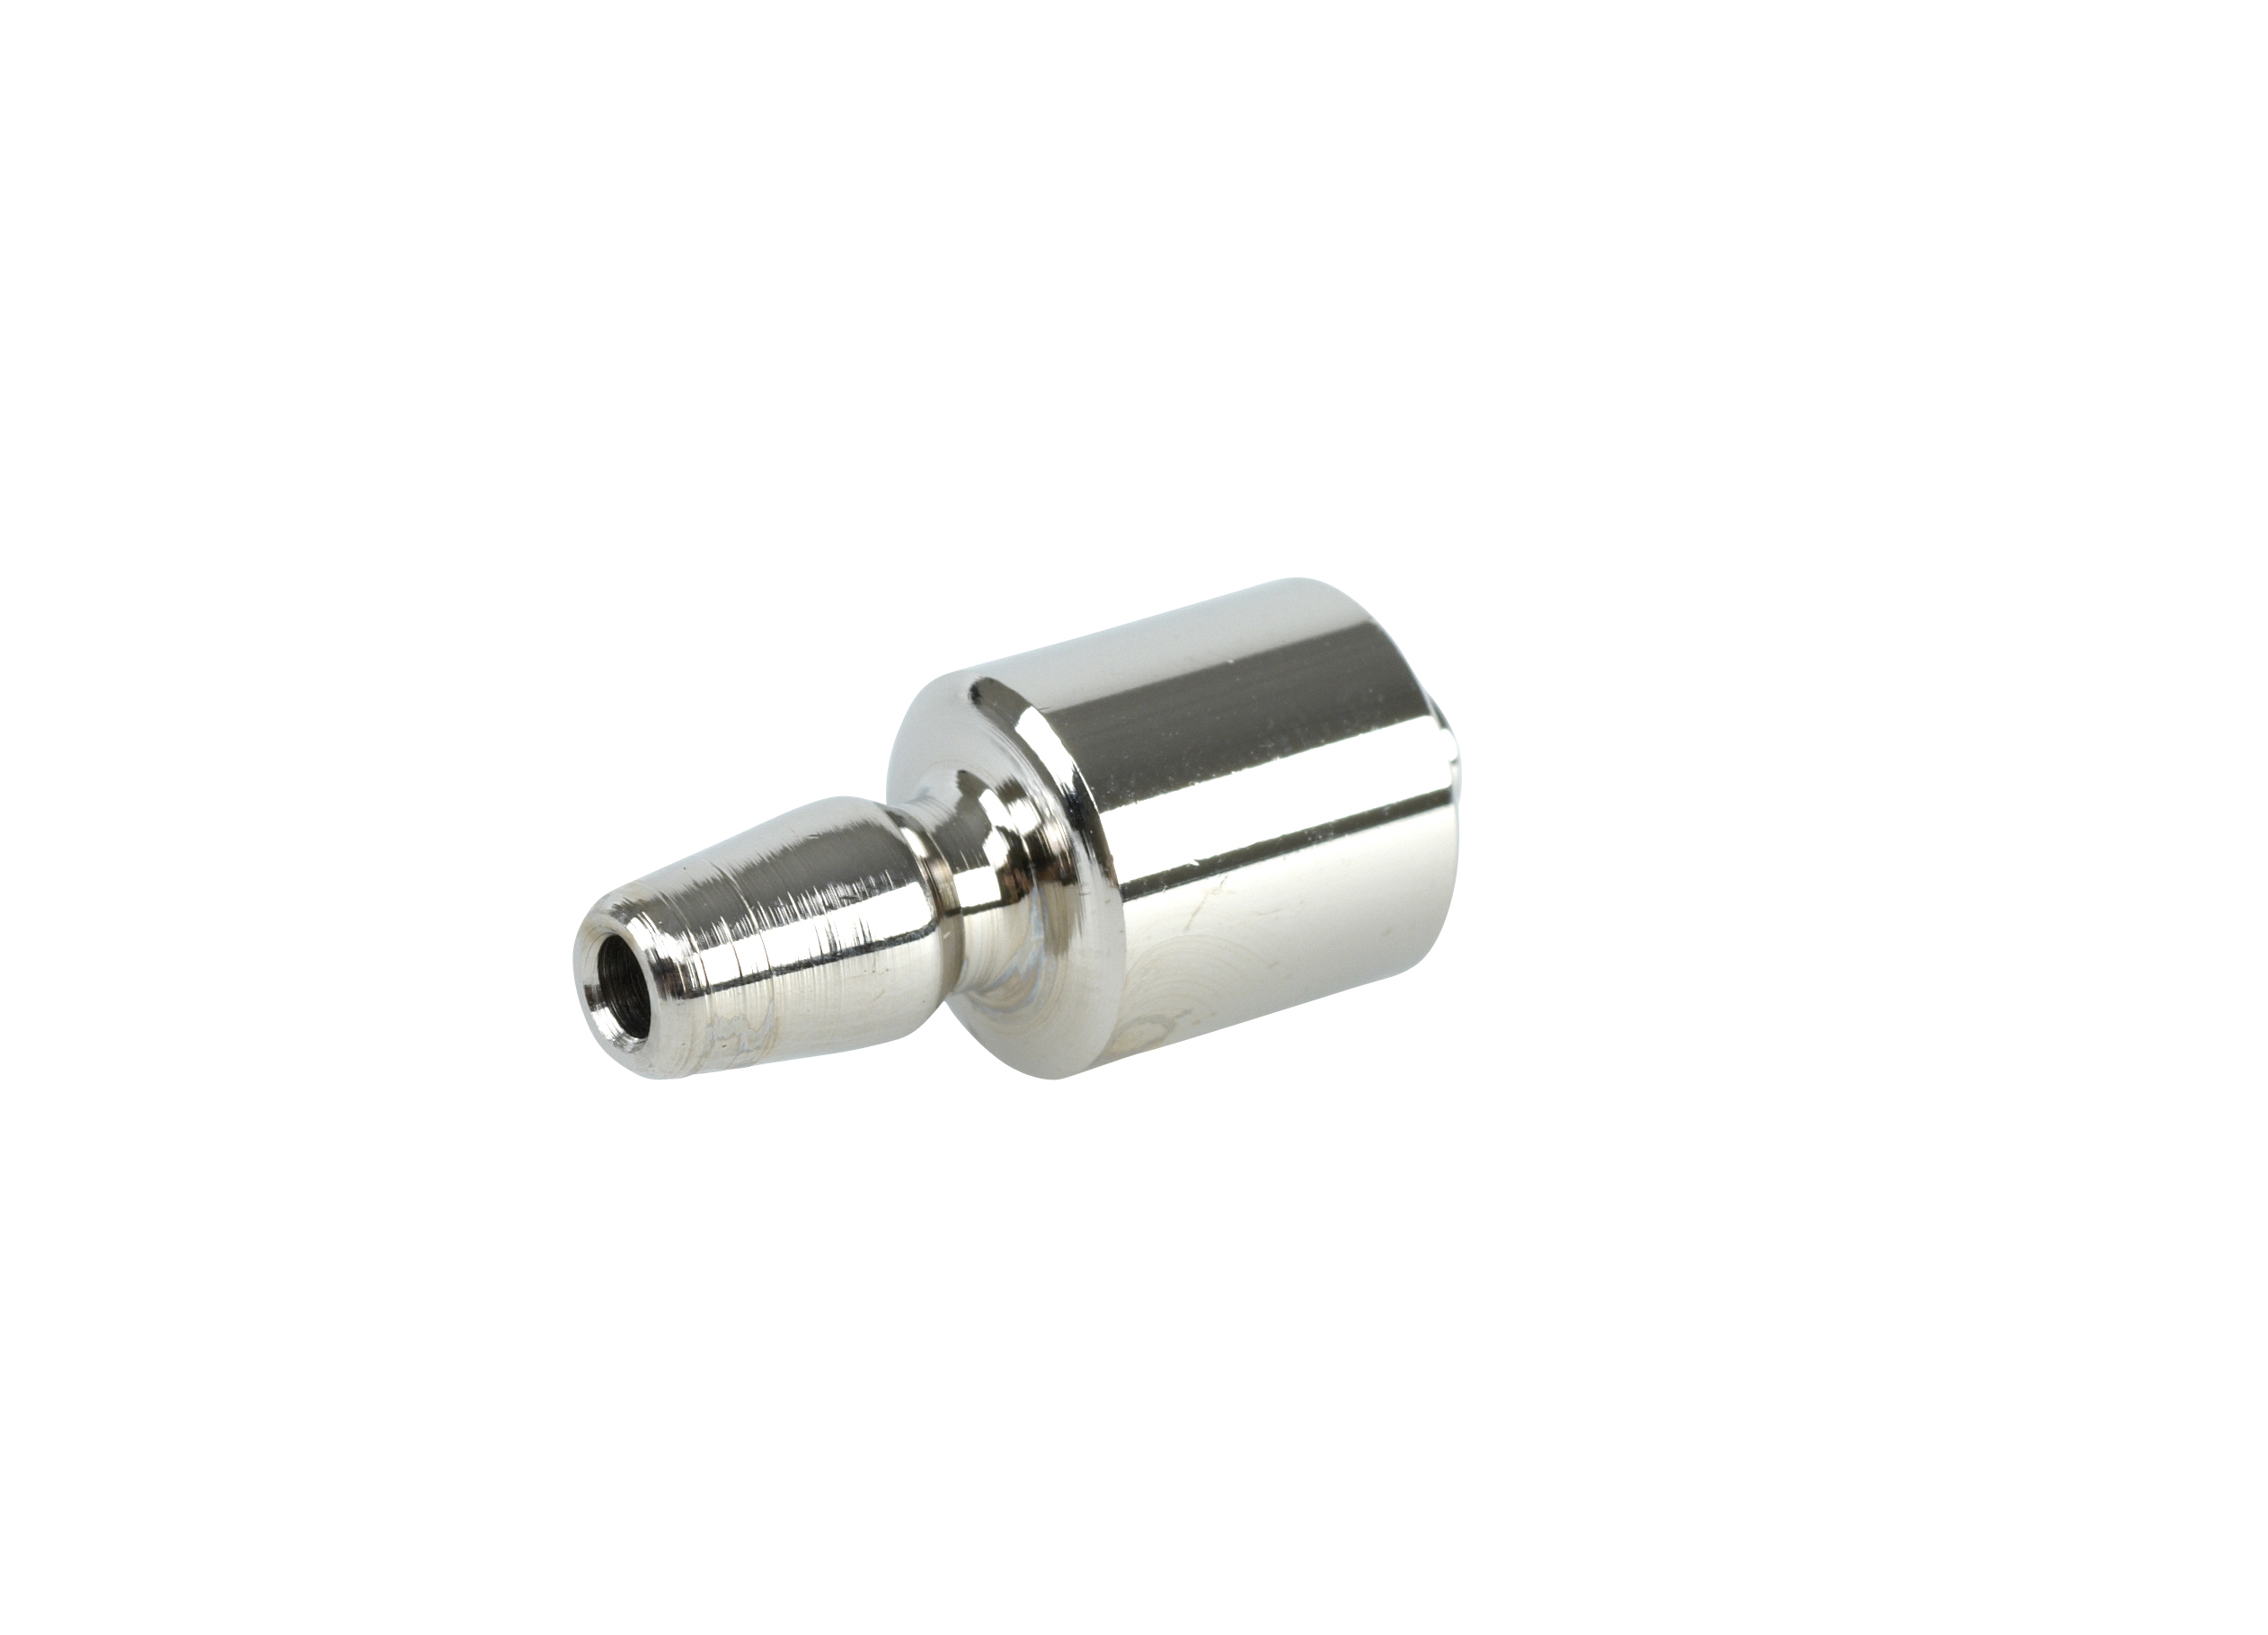 Tubing joint male luer lock